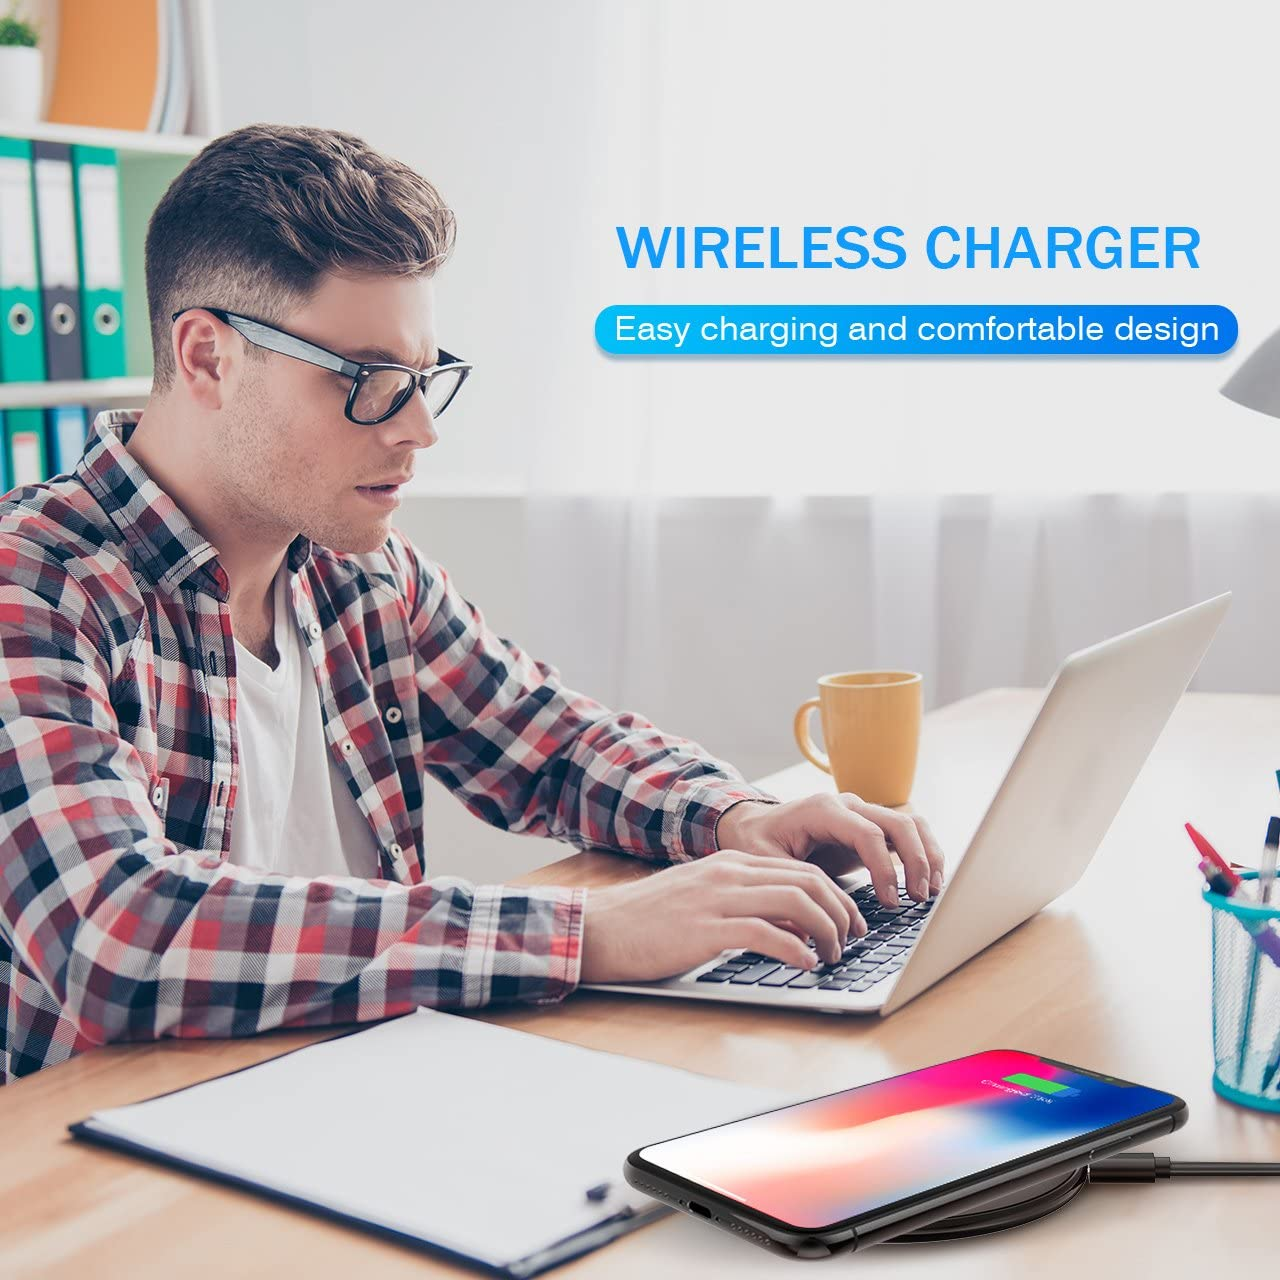 High-Speed AC Adapter Included Qi Wireless Charging Pad for iPhoneX//8//8+ Galaxy S9//S9+//S8//S8+//Note 8//S7//S7 Edge//Note 5 and All Qi-enabled Devices Seneo Upgraded Wireless Charger